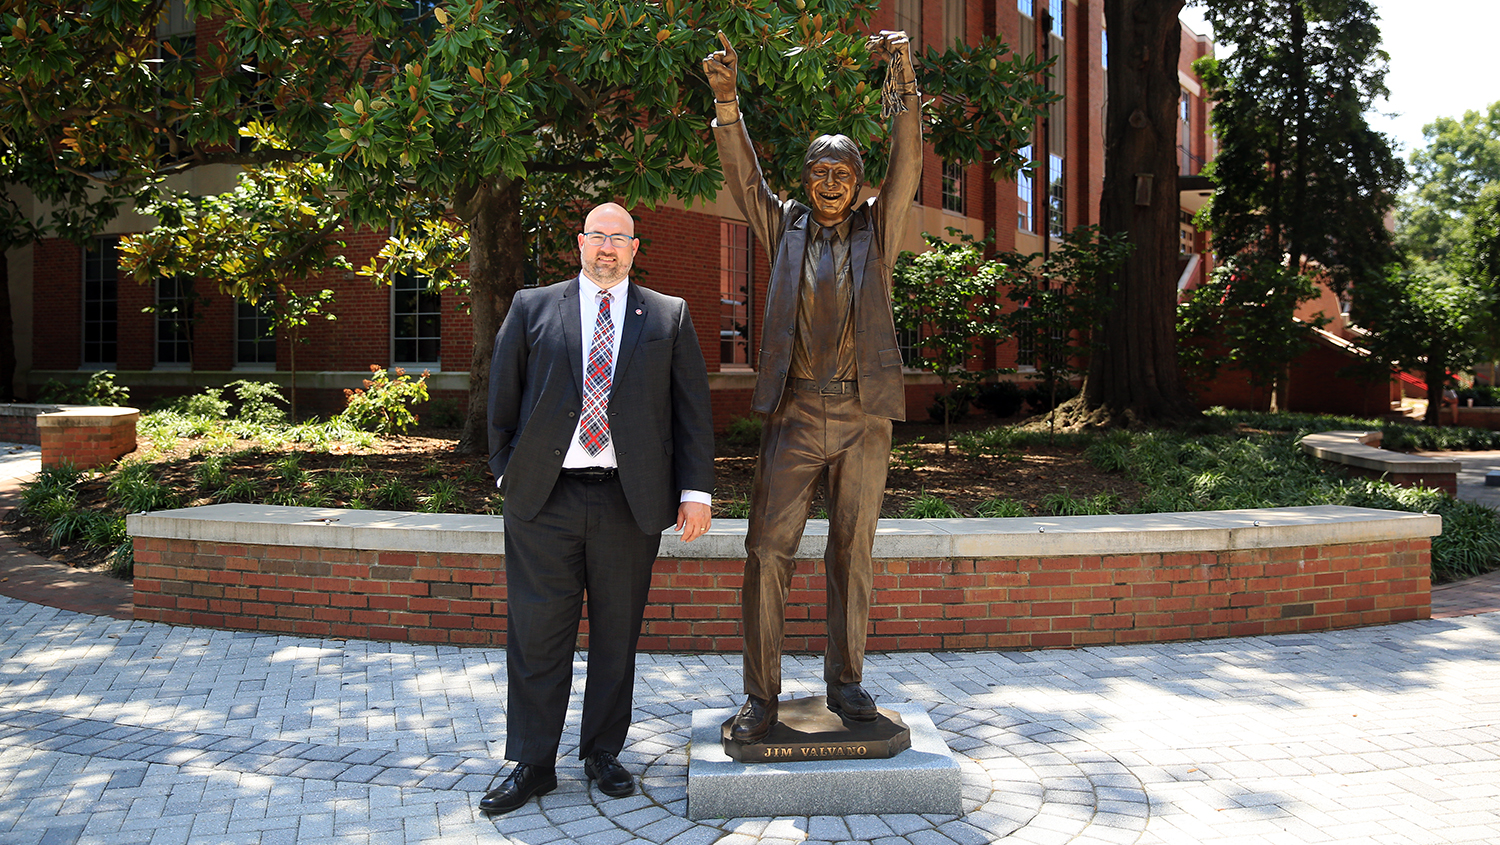 NCTF executive director Michael Ward stand next to bronze statue of Jim Valvano outside